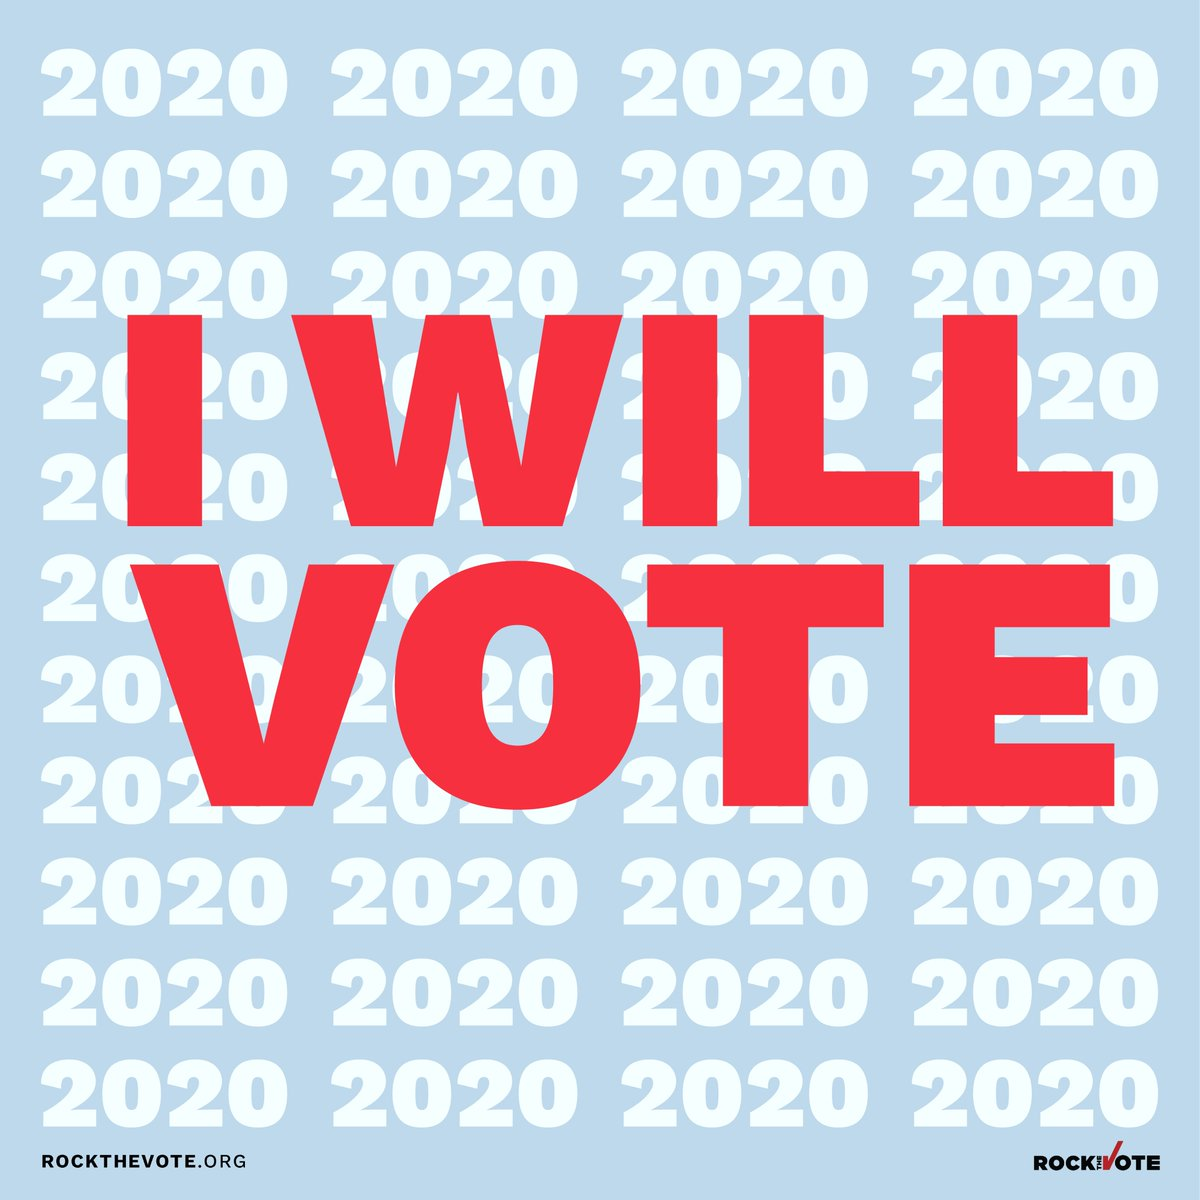 Today I'm encouraging you to check your voter status @RockTheVote to make sure you're in the clear for the 2020 Election! 👉🏼   #vote #vote2020 #RegisterToVote